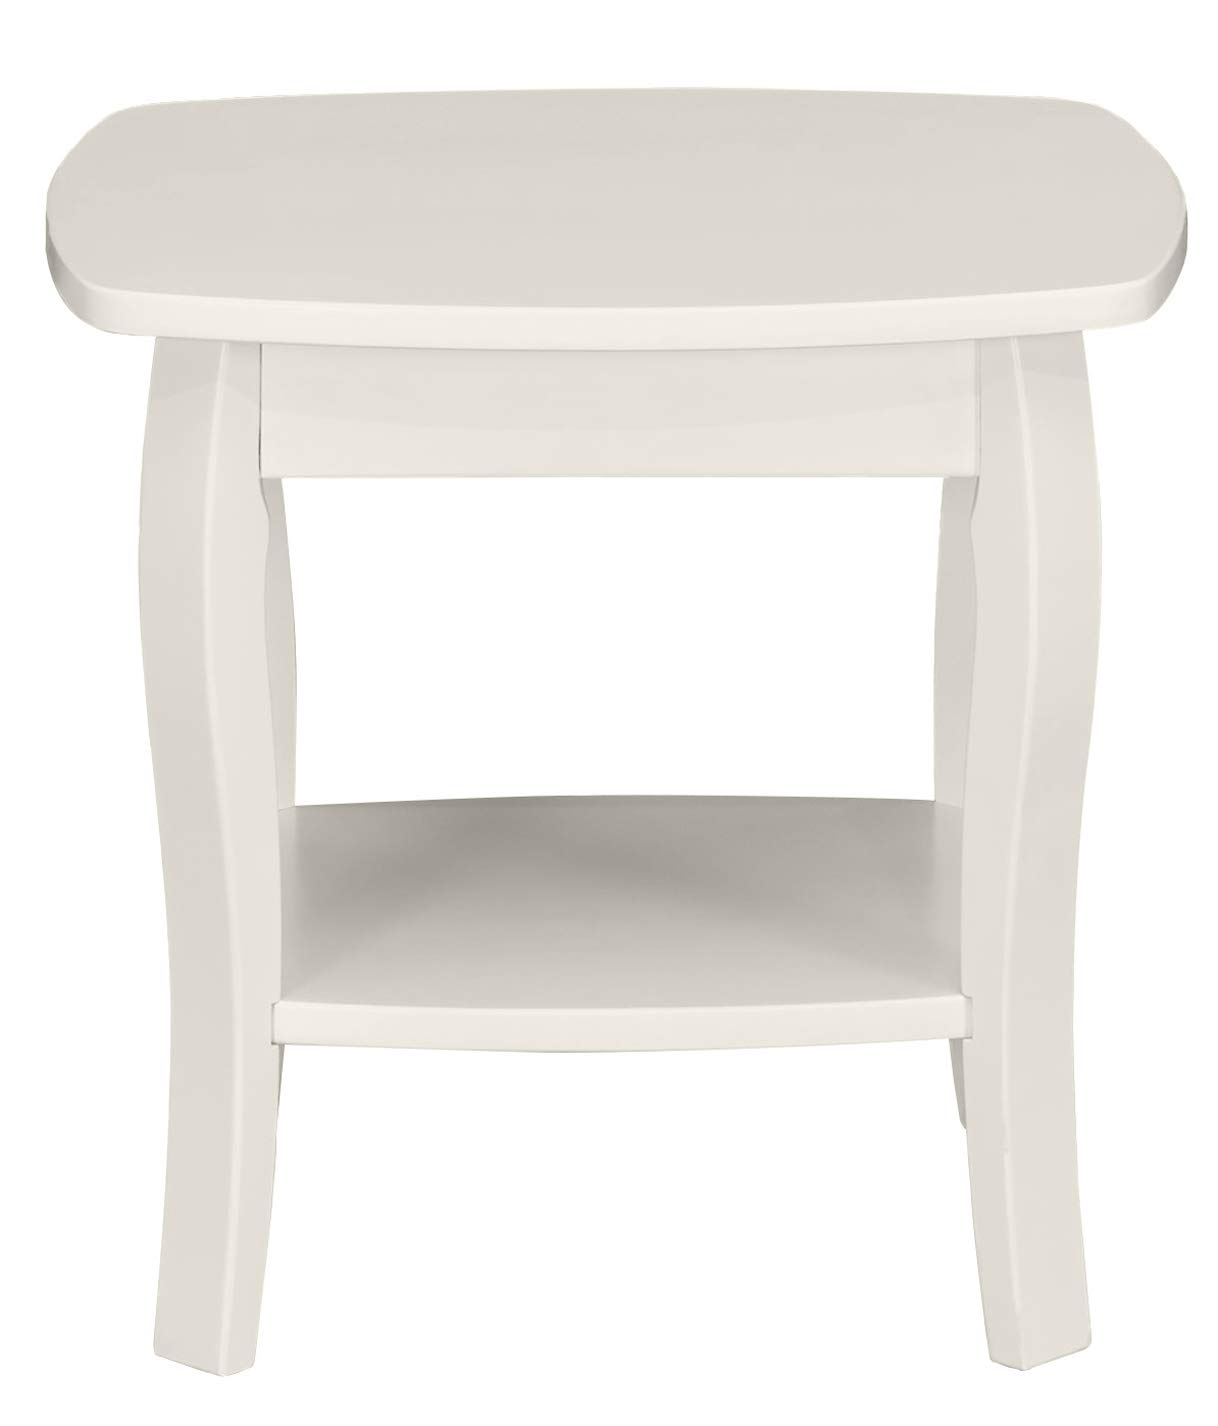 Ravenna Home Anne Marie Small Curved Leg Shelf Storage Side End Table, 20 W, White